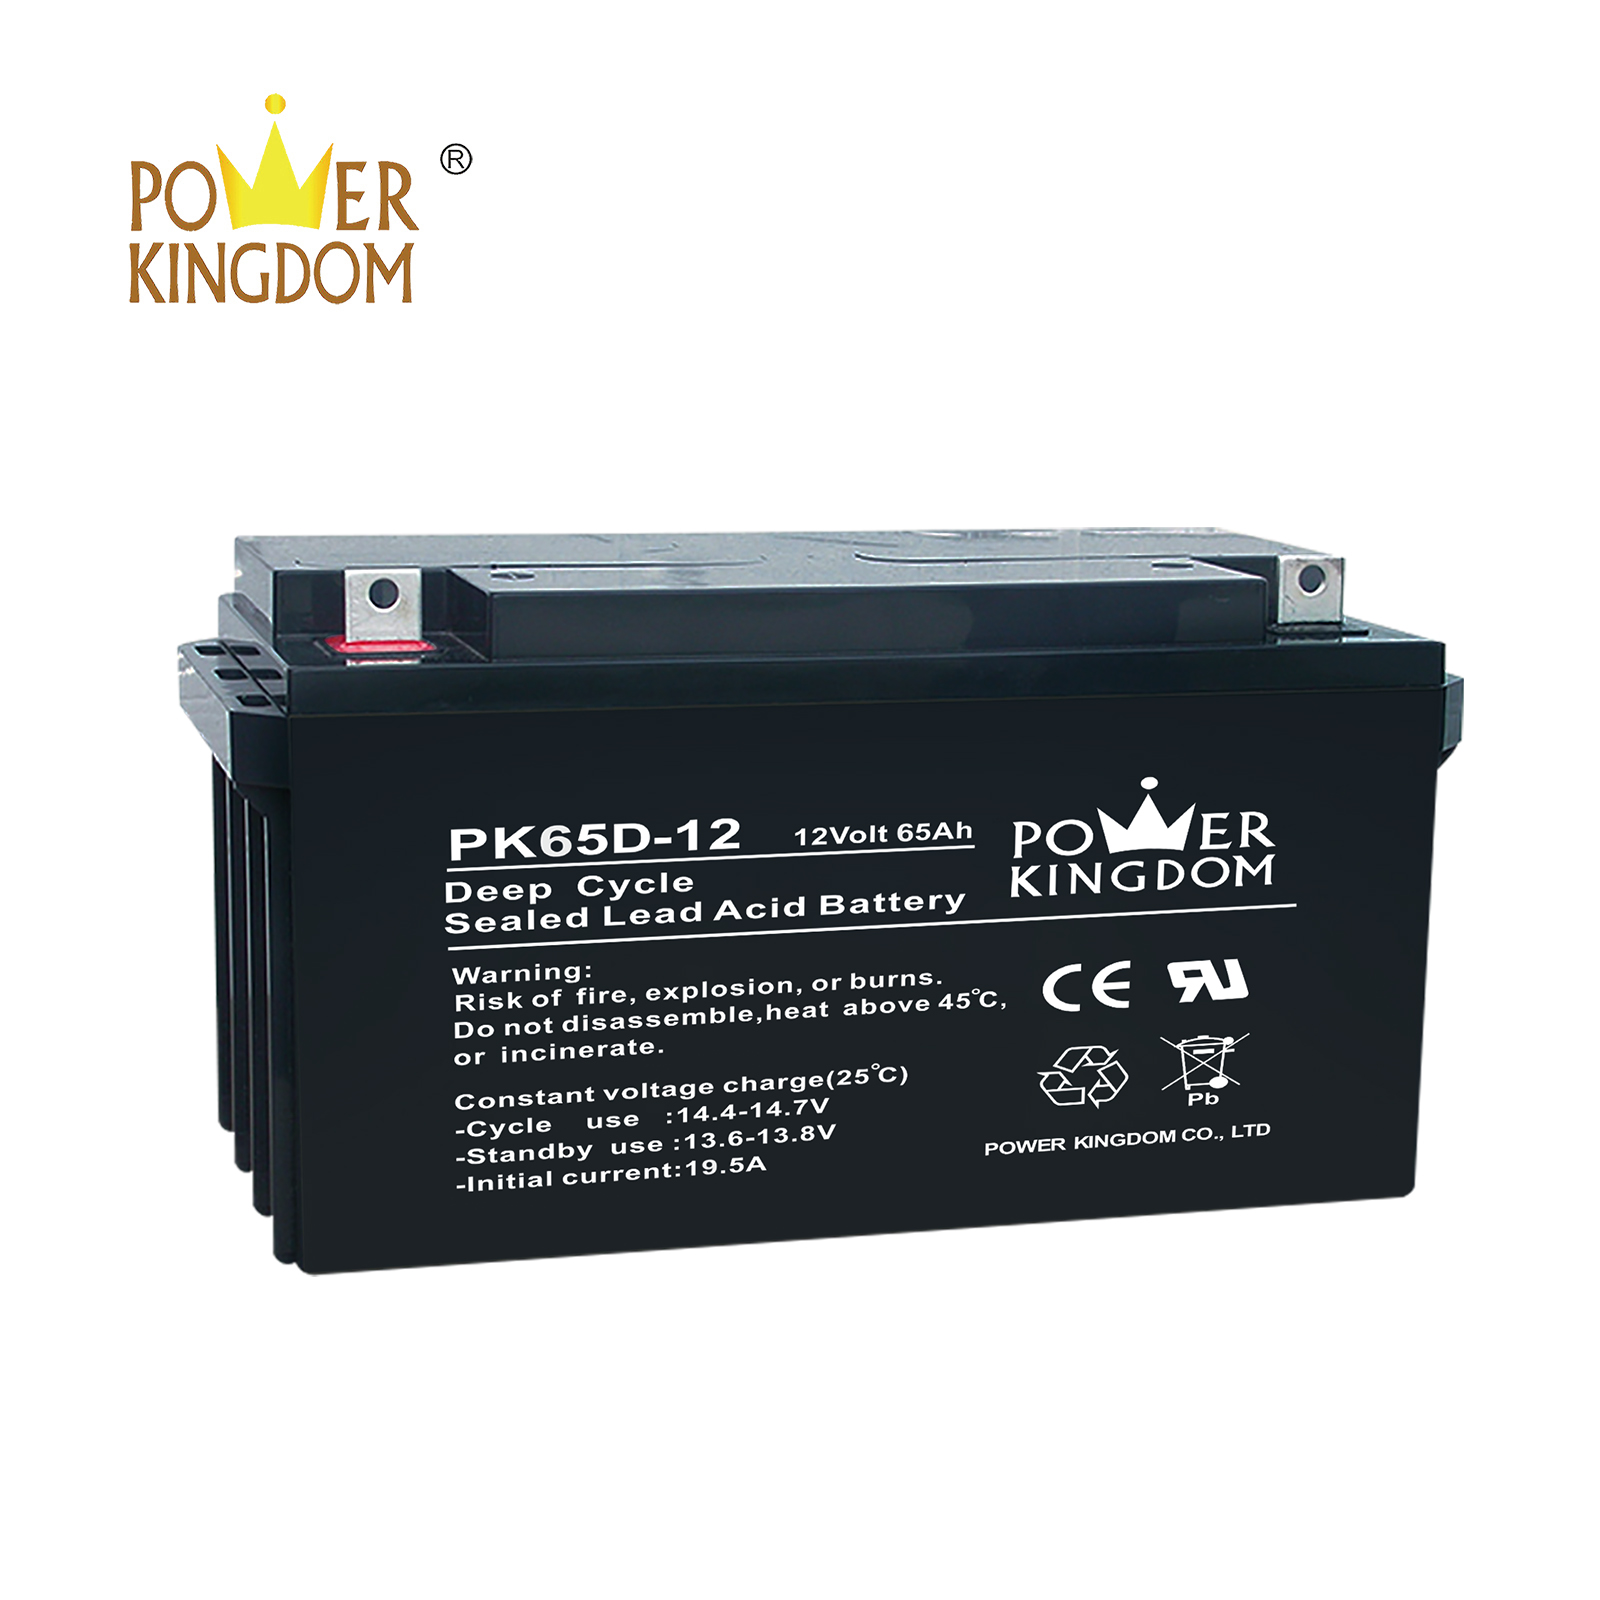 Power Kingdom 130 amp deep cycle battery factory wind power systems-2